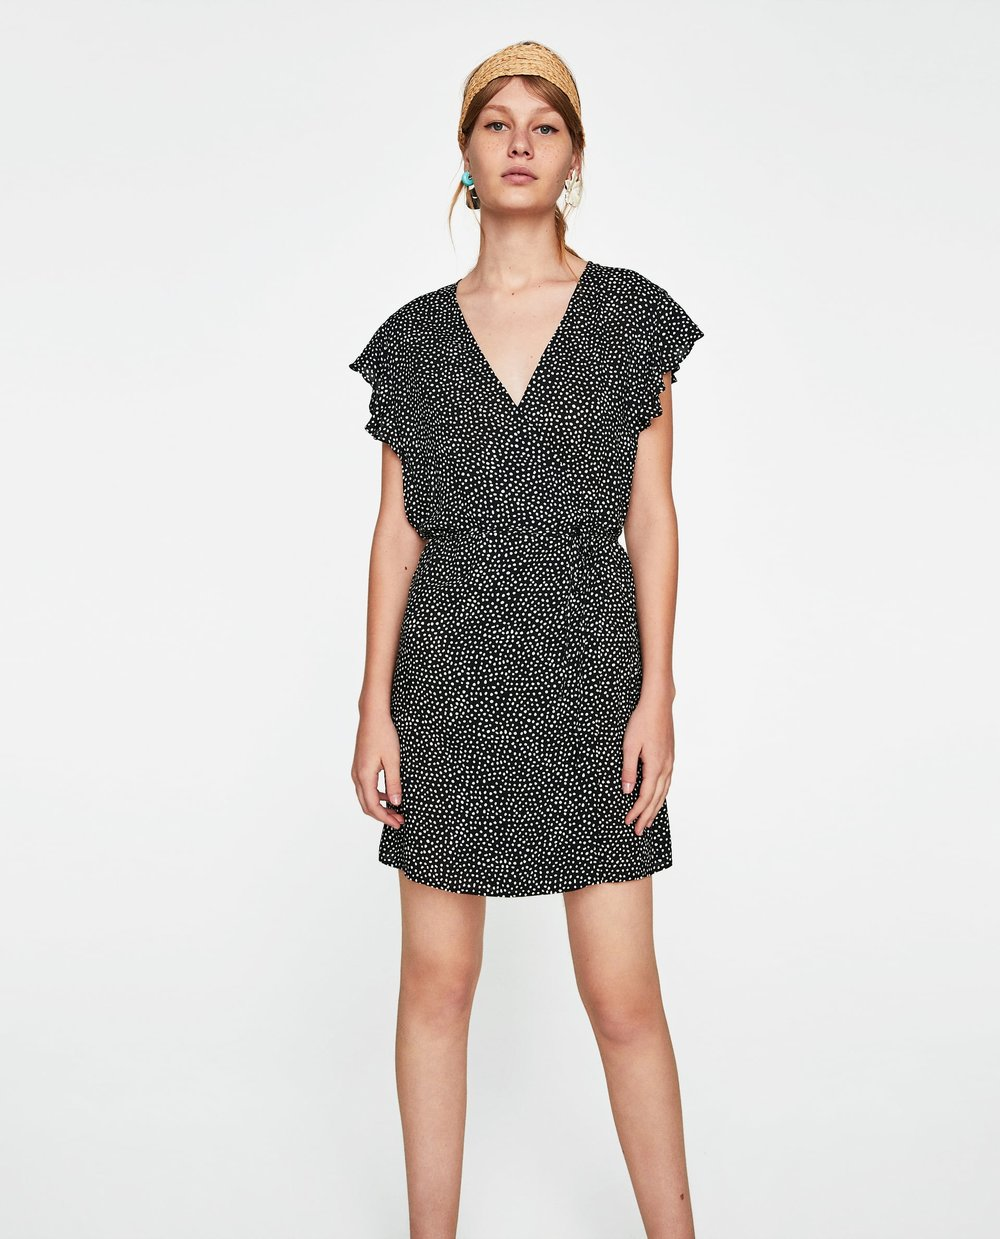 Zara-POLKA-DOT-WRAP-DRESS.jpg